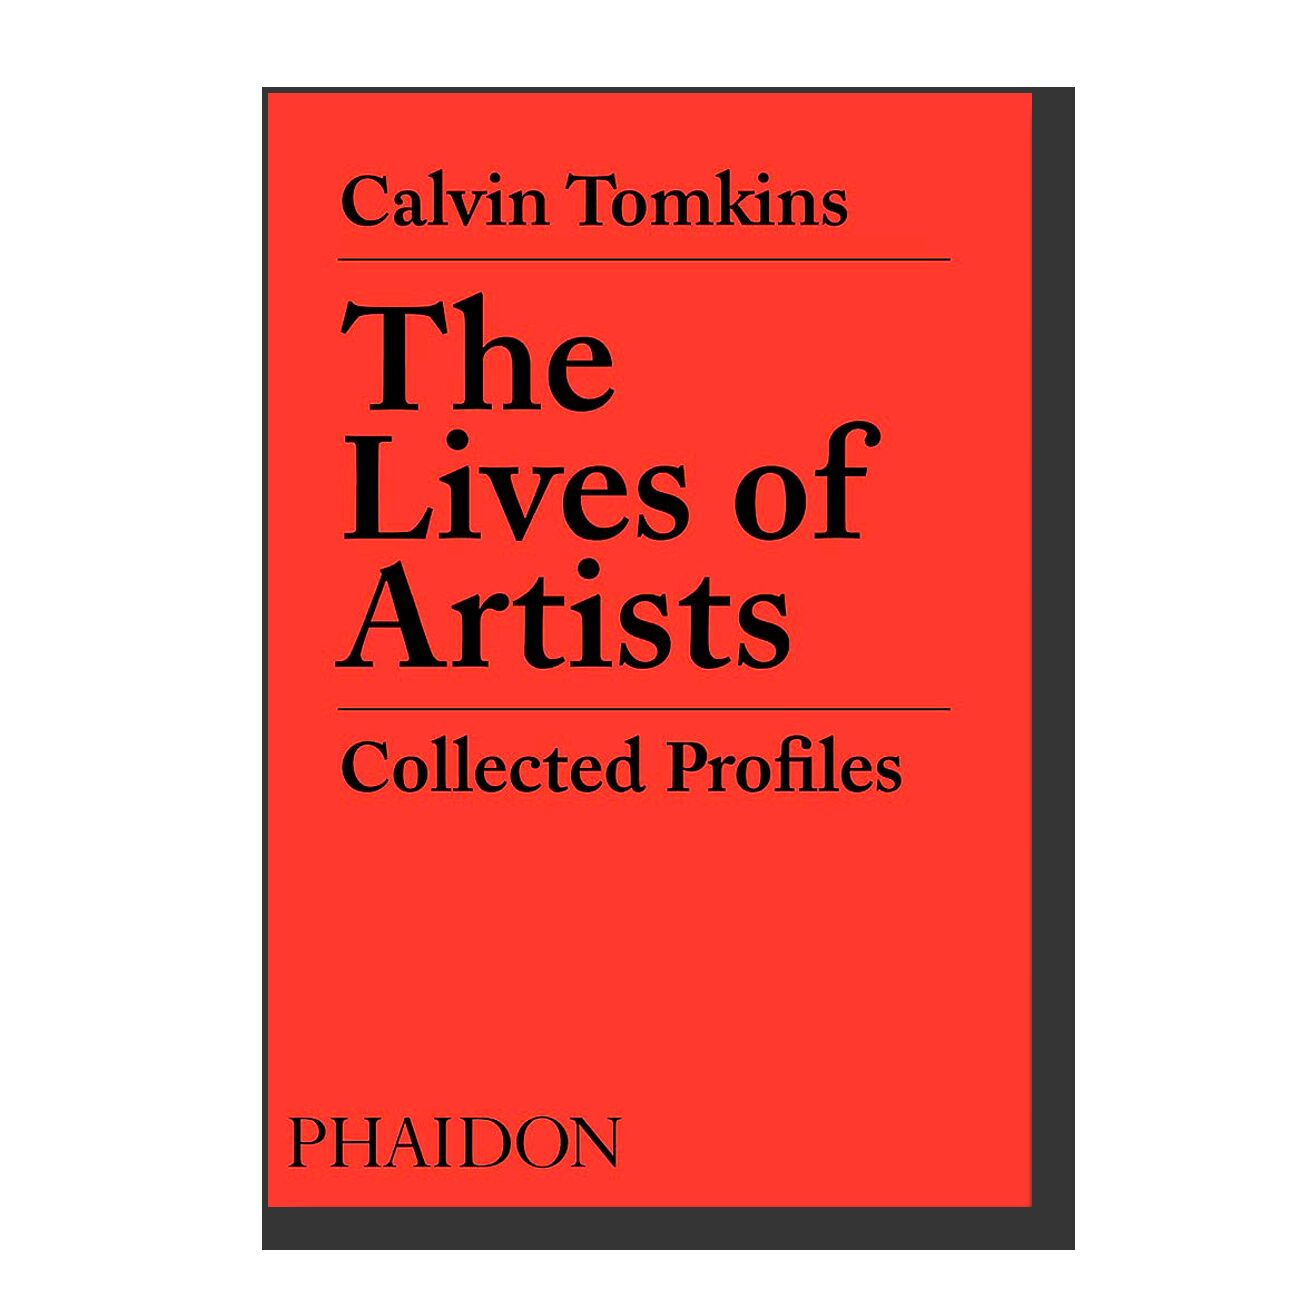 The Lives of Artists: Collected Profiles